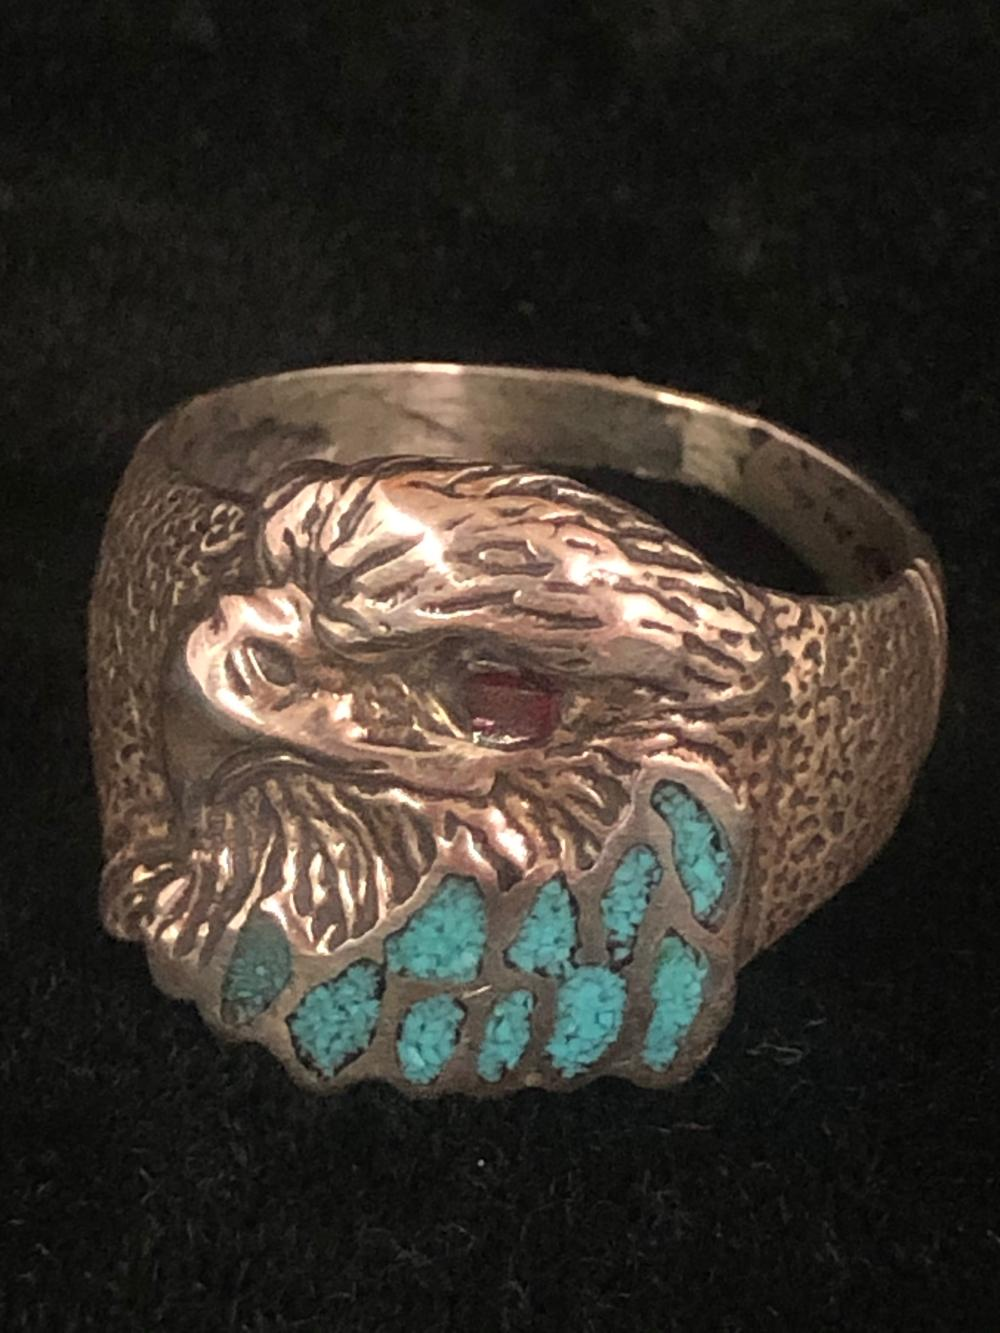 Eagle head with turquoise chip inlay sterling silver ring